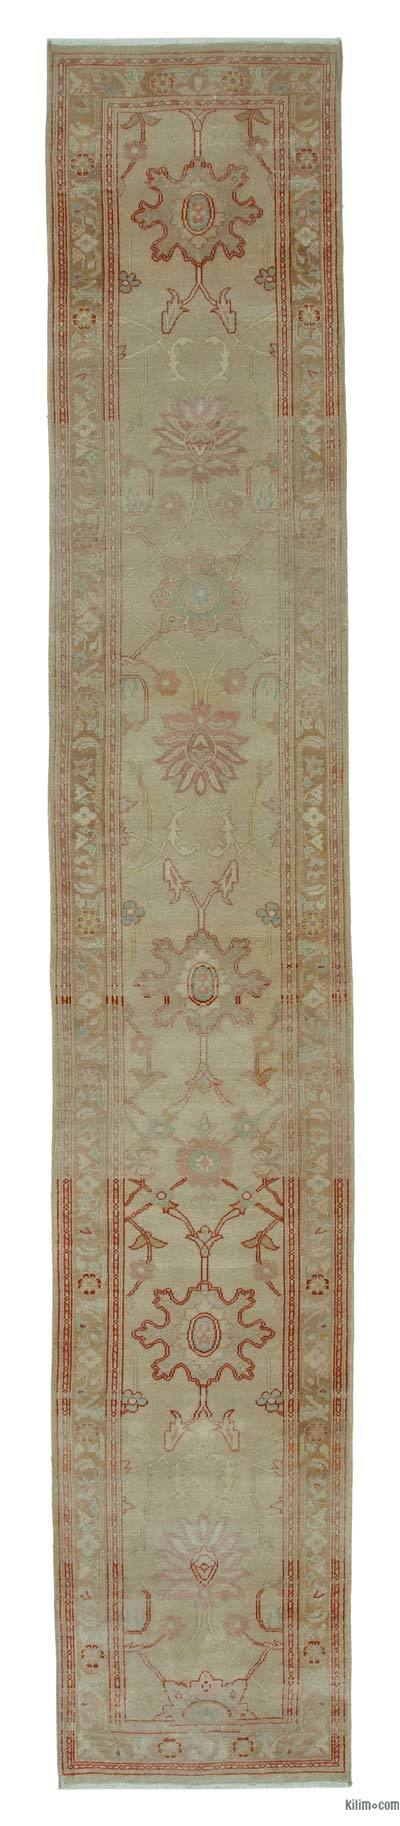 "New Oushak Runner Rug - 2' 4"" x 13' 9"" (28 in. x 165 in.)"